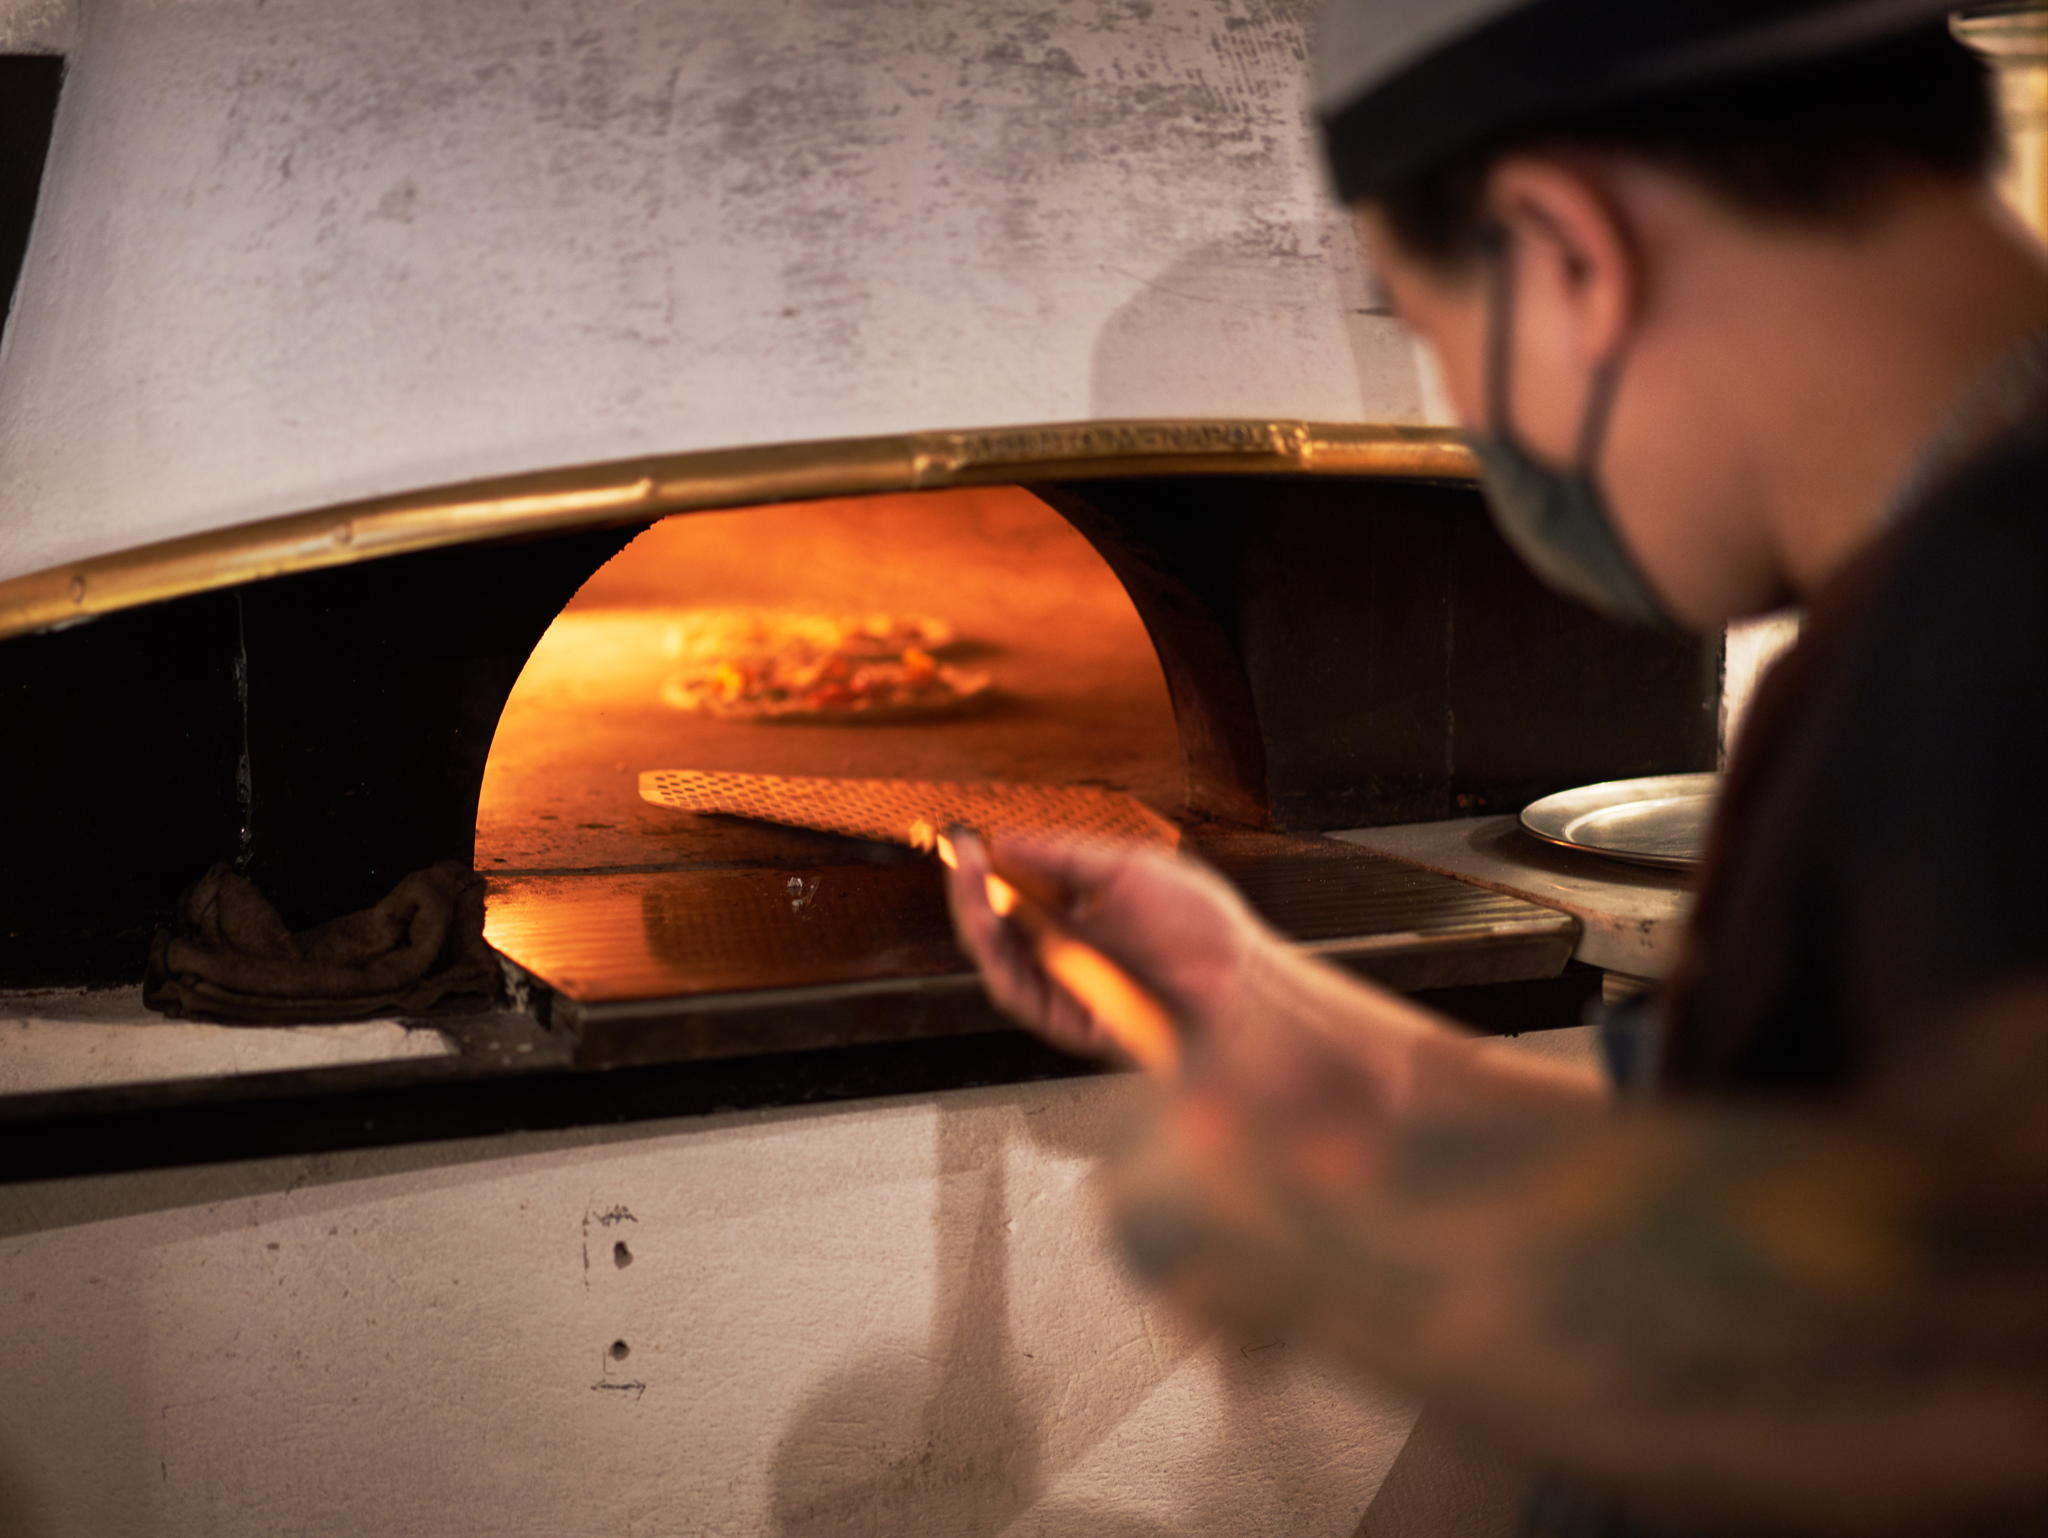 FROM OUR OVENS TO YOUR HOMES